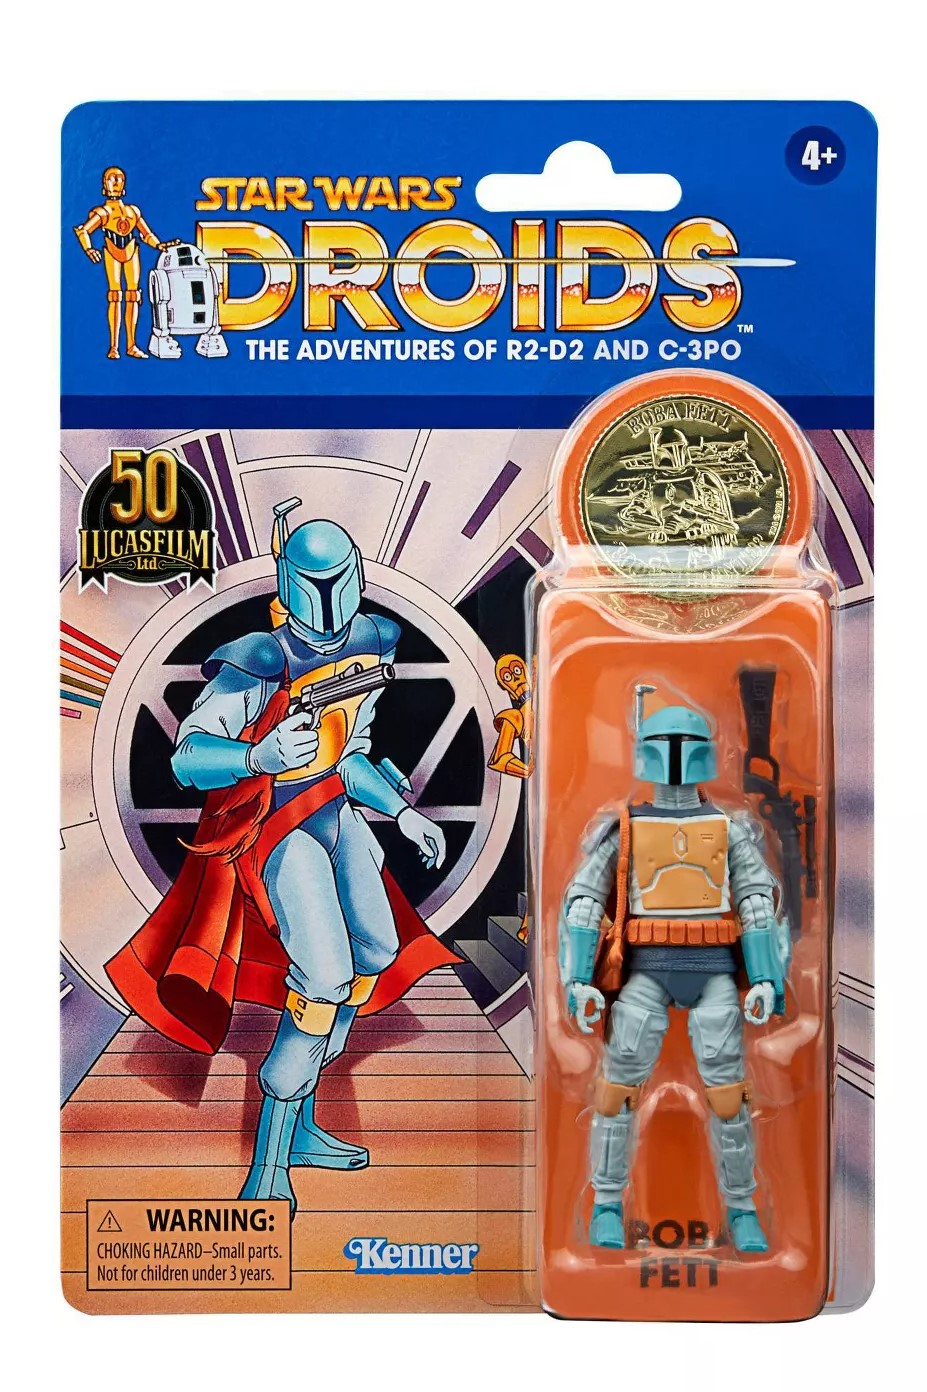 Star Wars The Vintage Collection DROIDS The Adventures Boba Fett 3 3/4-Inch Action Figure画像